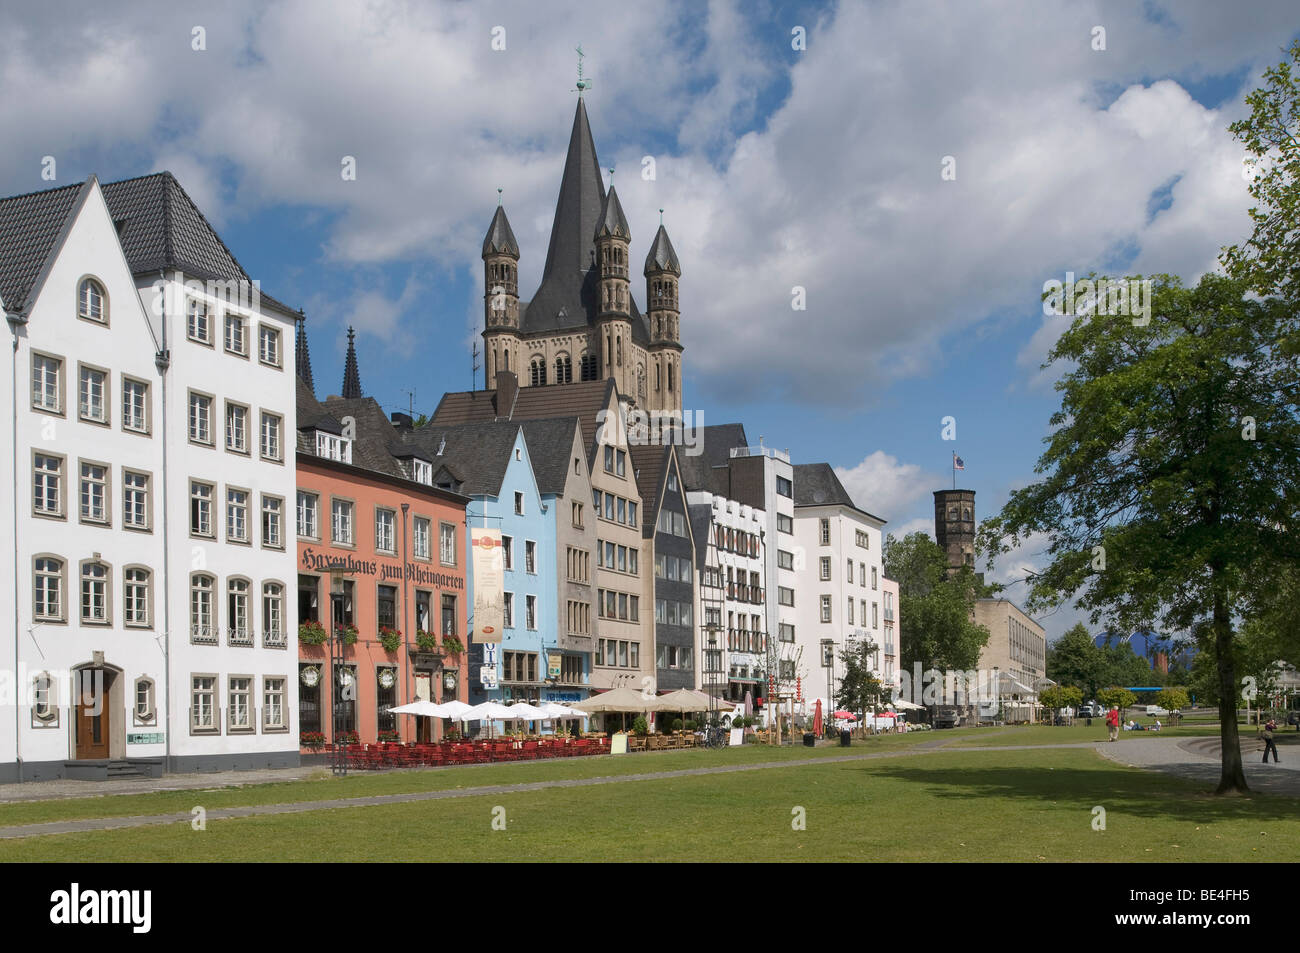 Row of houses of the Frankenwerft, St. Martins church and the stair tower of the Stapelhaus, Fish Market, historic - Stock Image